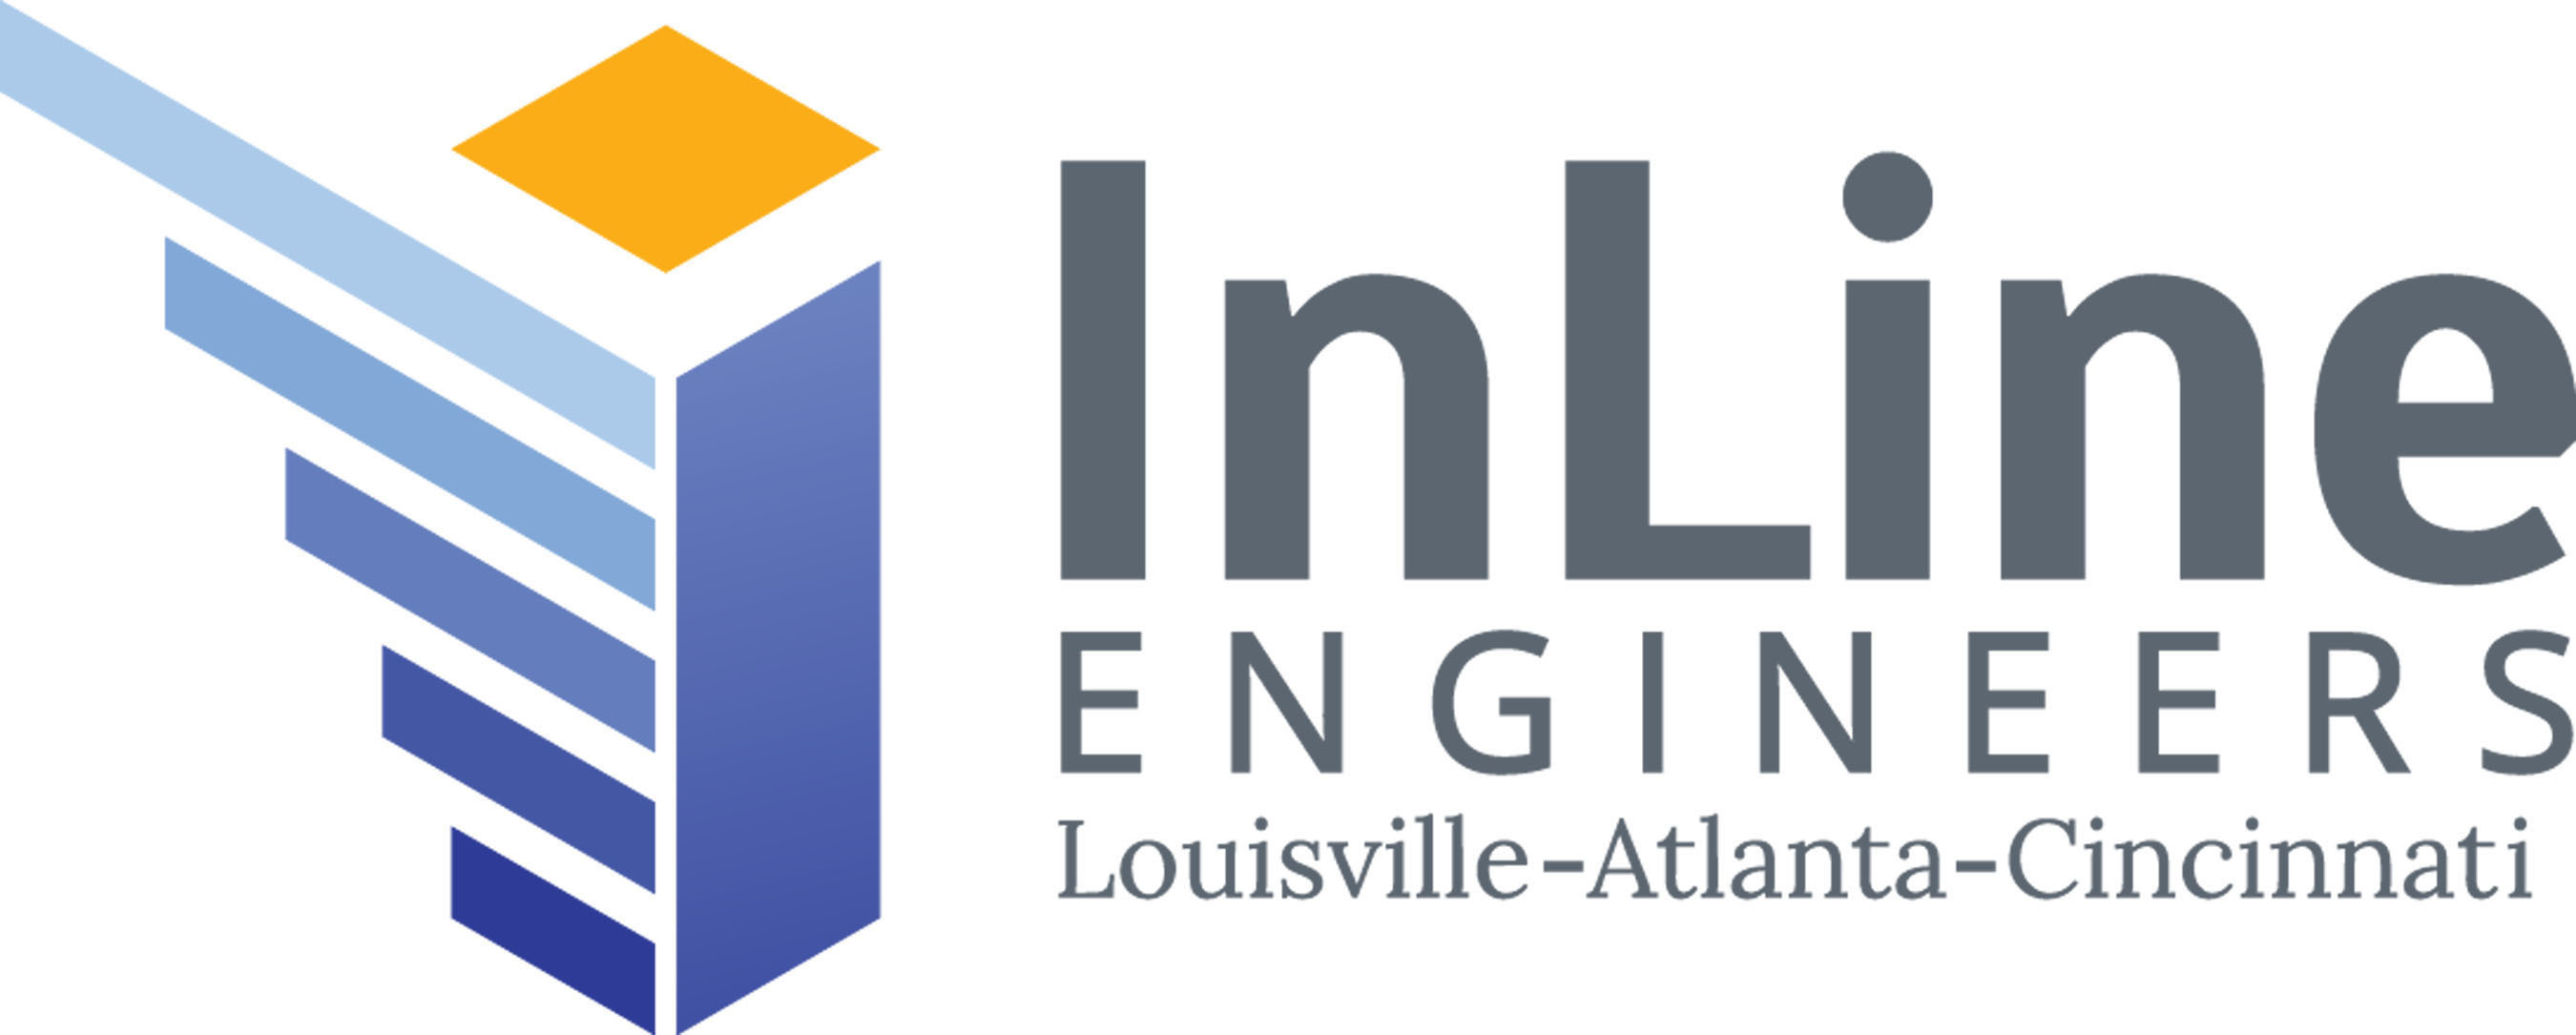 Providing unparalleled engineering and project management services to the Food and Beverage industry. (PRNewsFoto/InLine Engineers) (PRNewsFoto/INLINE ENGINEERS)